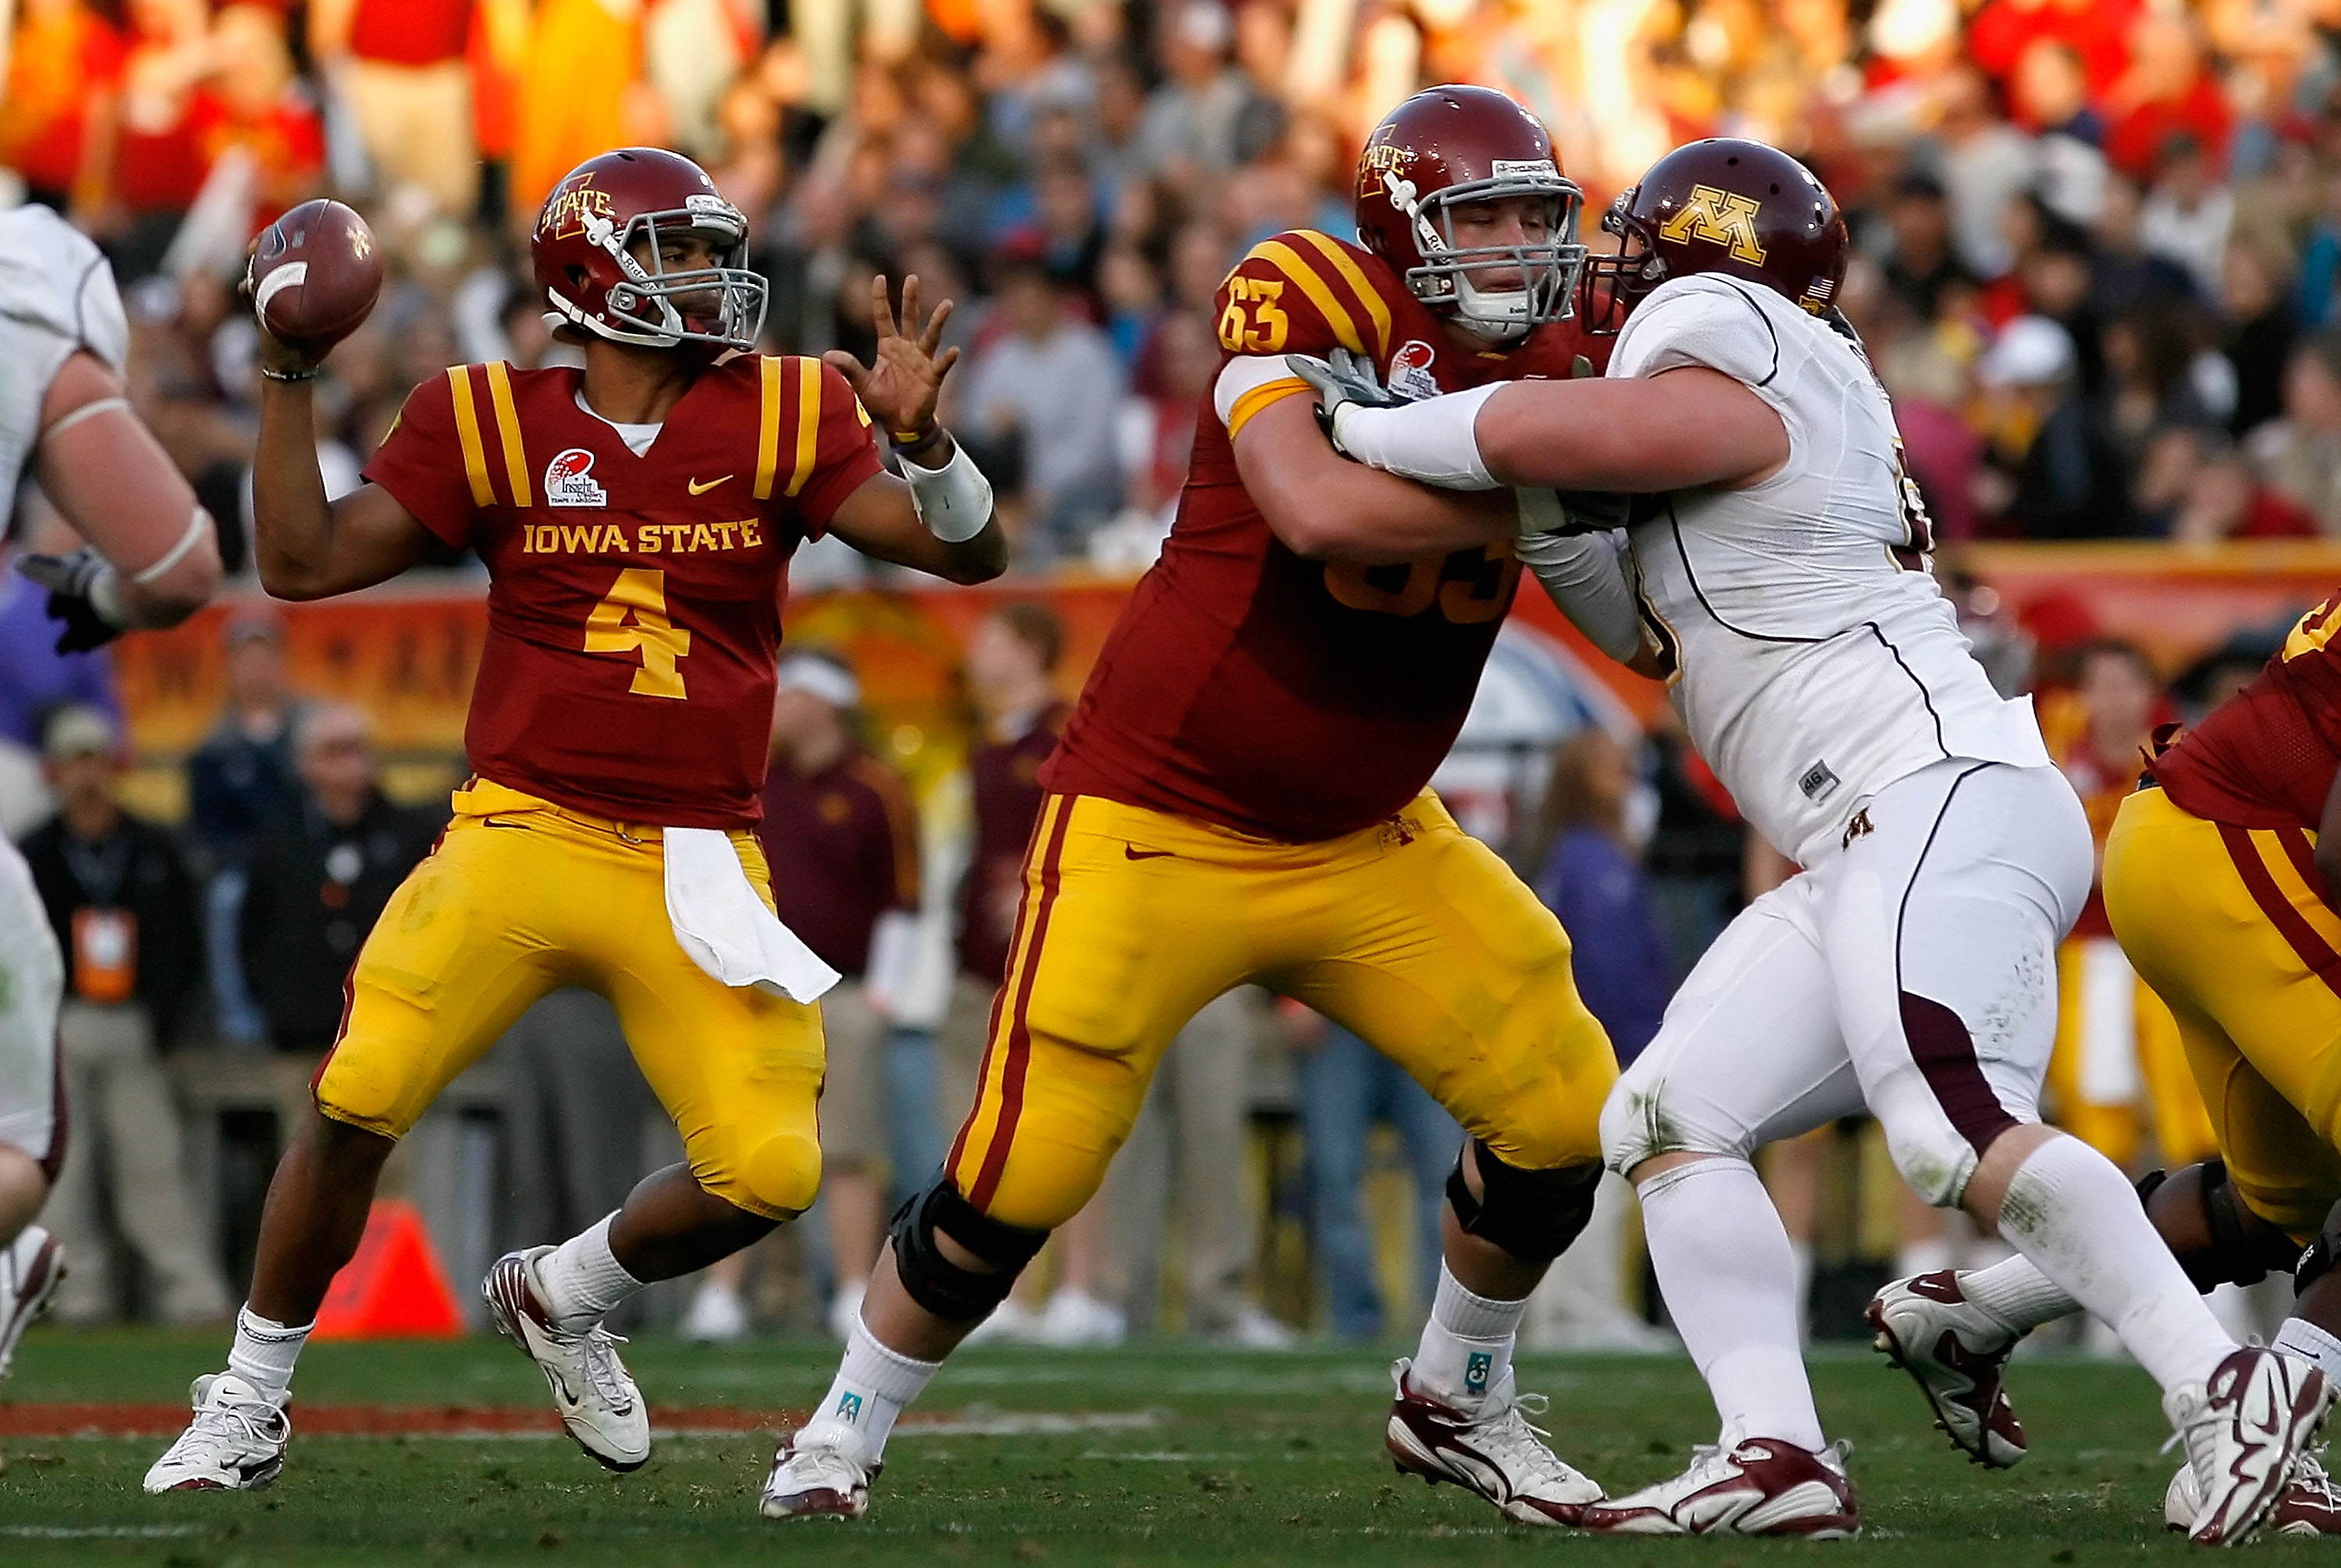 TEMPE, AZ - DECEMBER 31:  Quarterback Austen Arnaud #4 of the Iowa State Cyclones drops back to pass against the Minnesota Golden Gophers during the Insight Bowl at Arizona Stadium on December 31, 2009 in Tempe, Arizona. The Cyclones defeated the Golden G